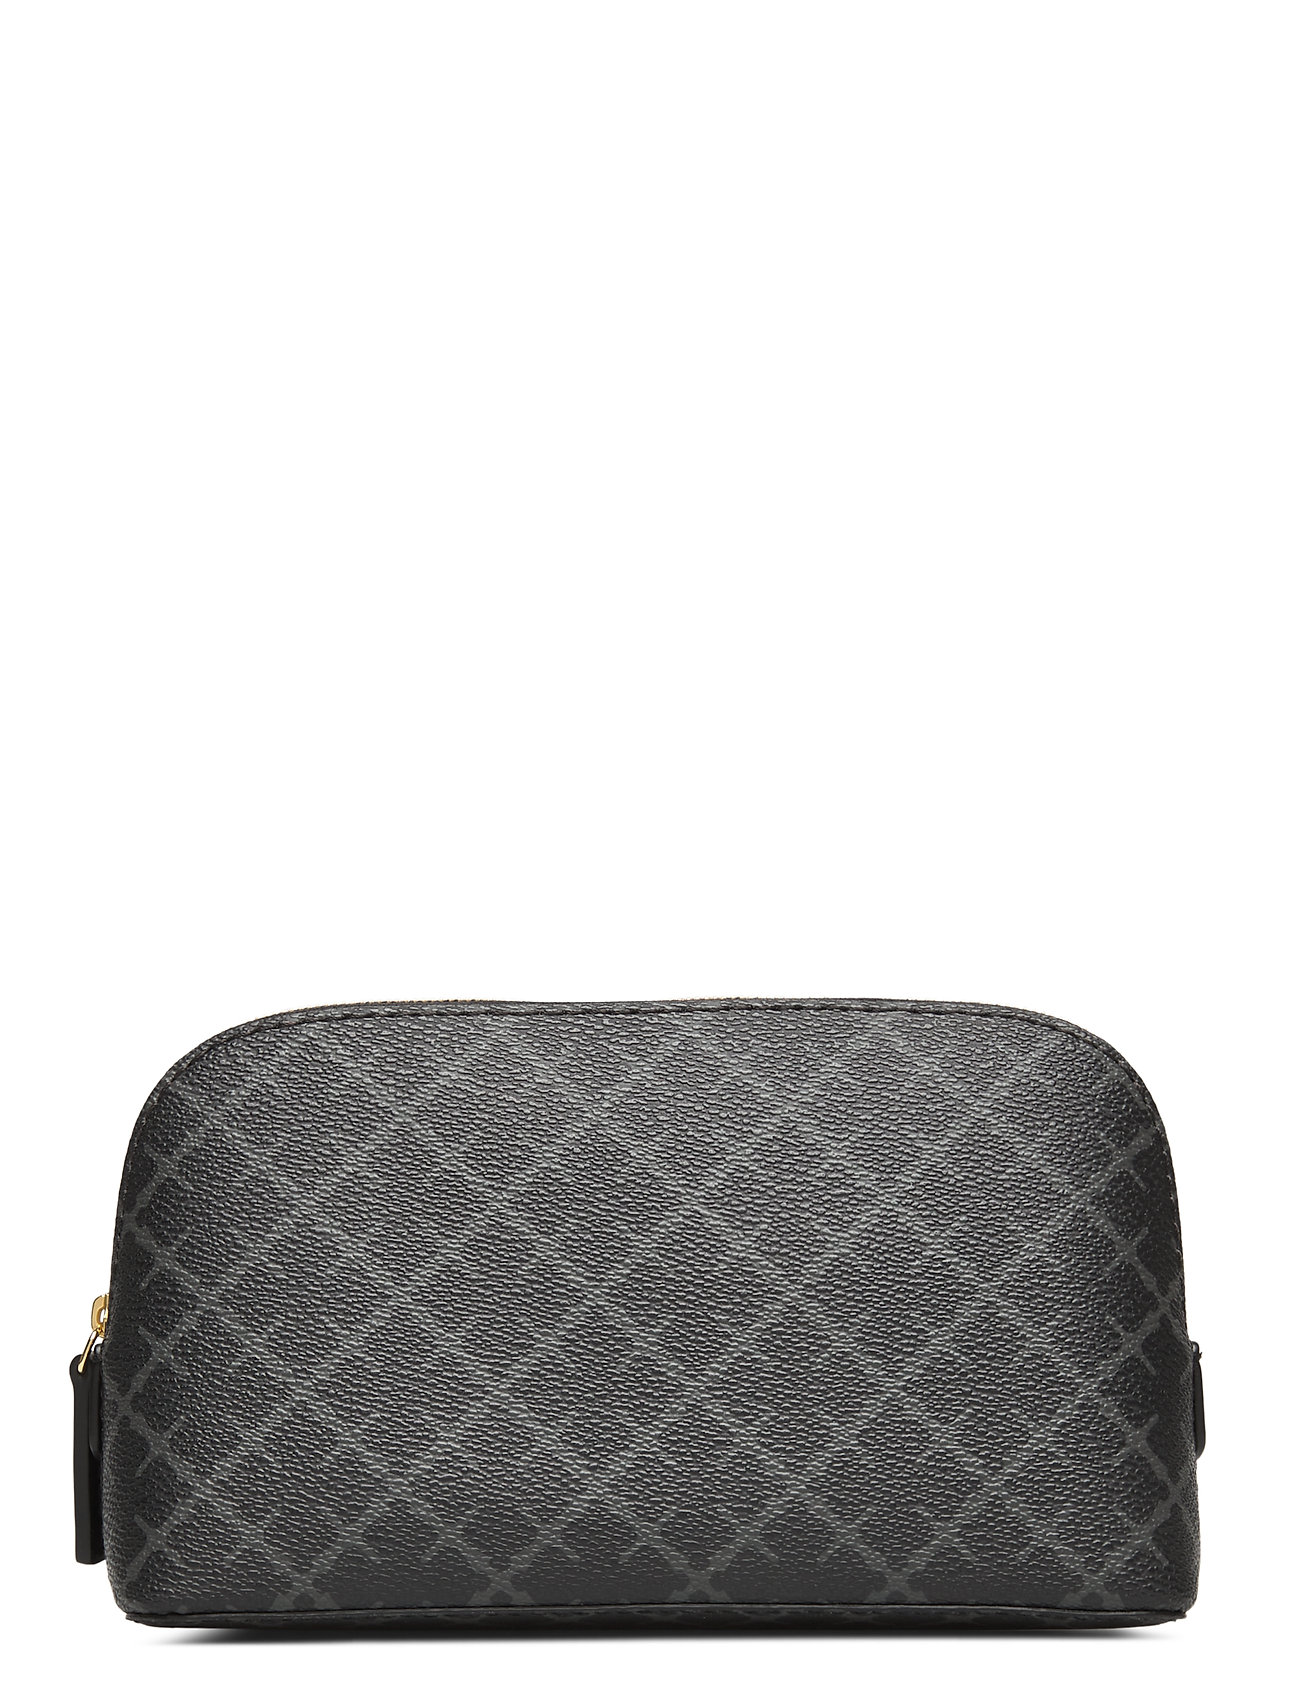 By Malene Birger BAE SMALL - CHARCOAL